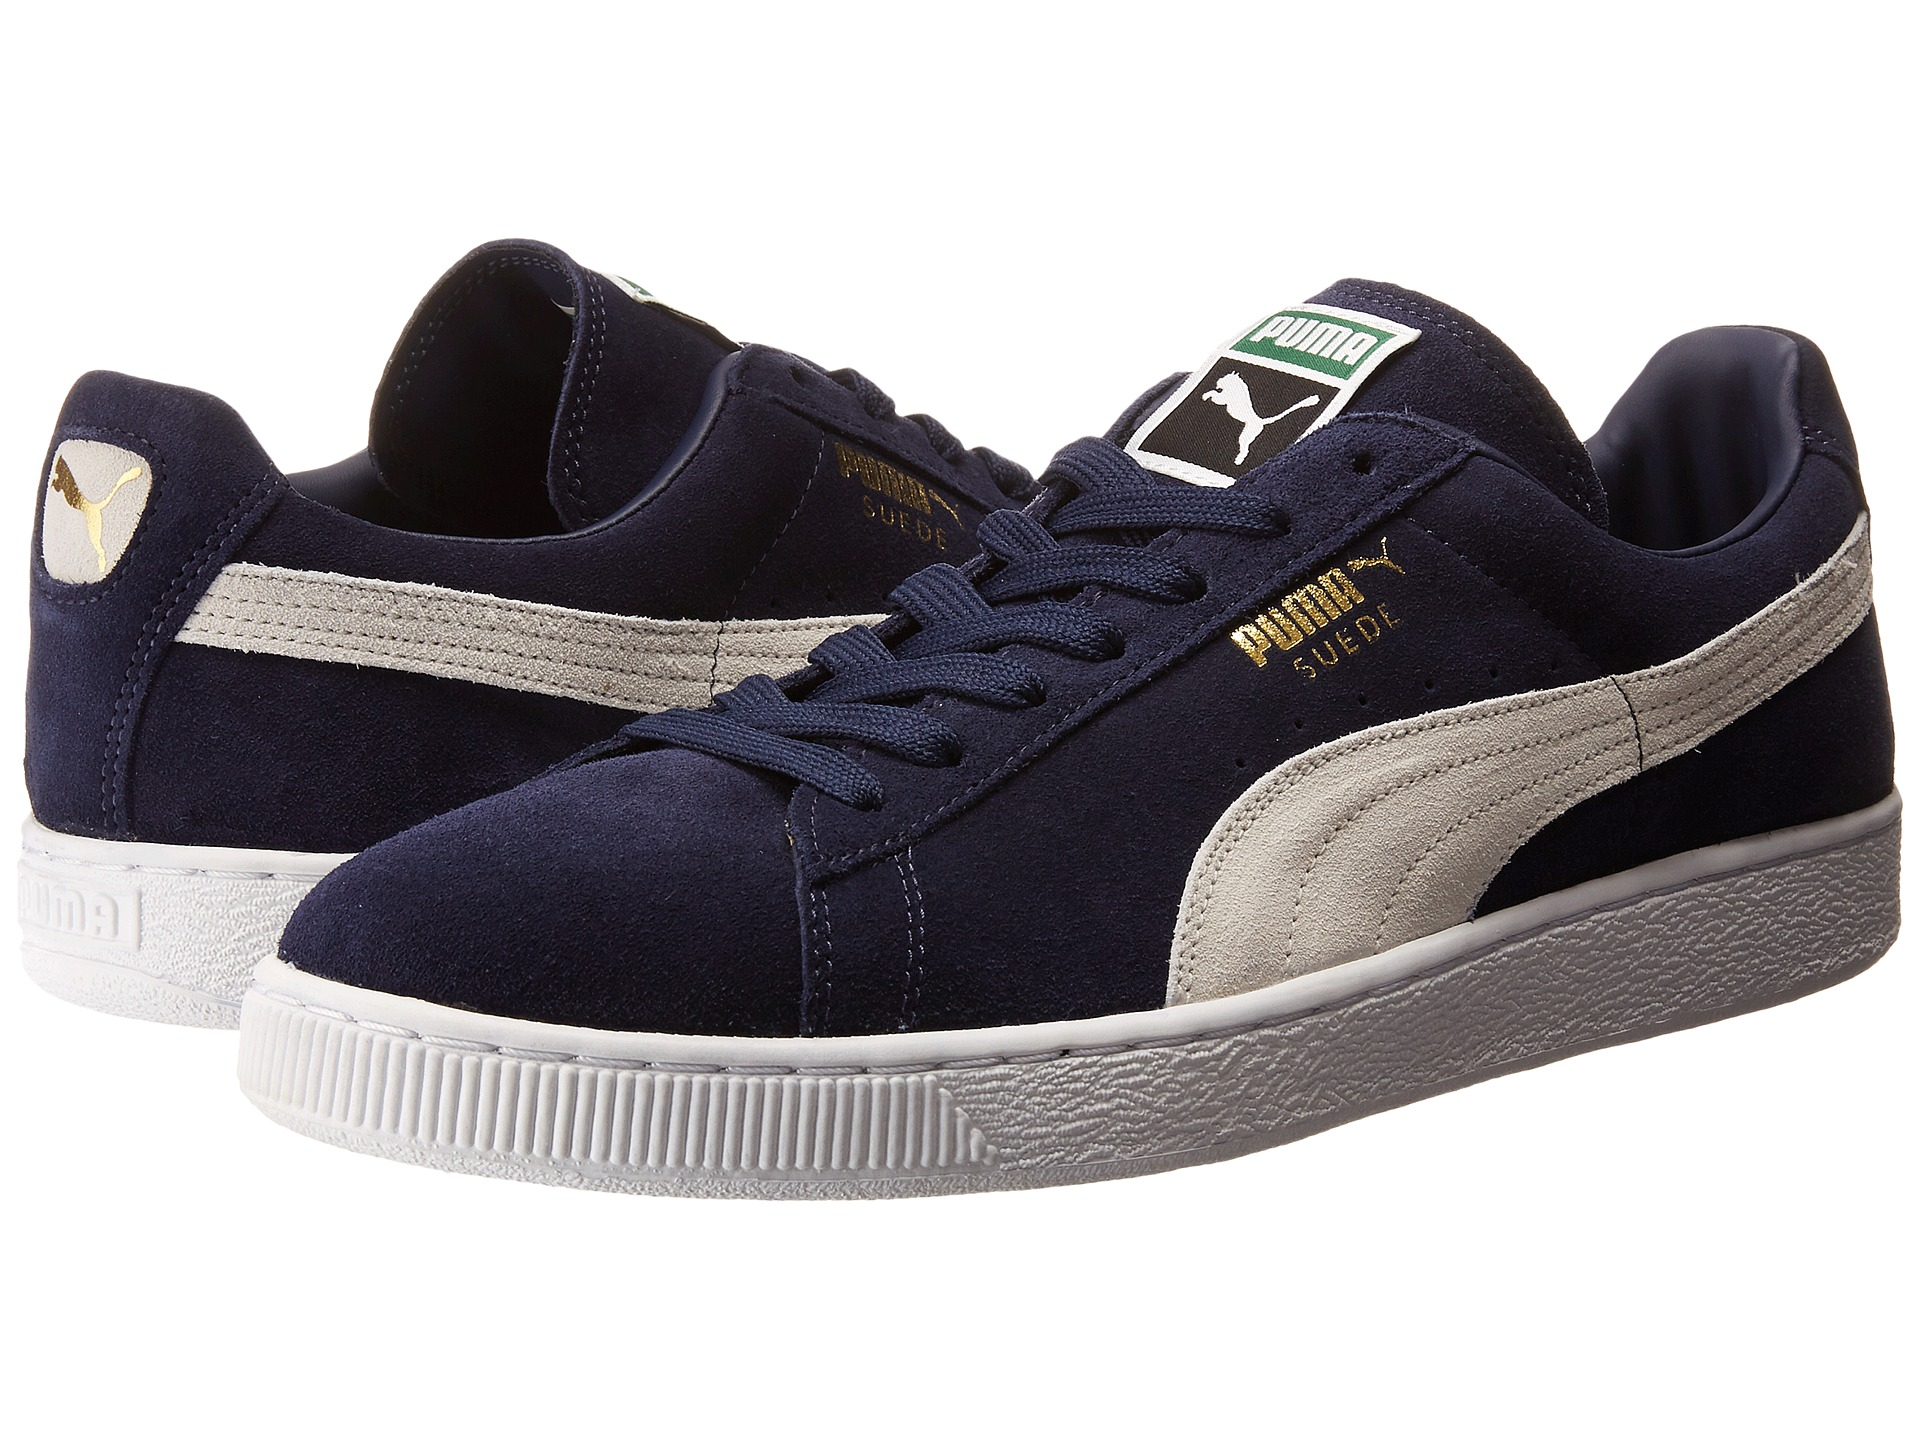 puma suede classic at. Black Bedroom Furniture Sets. Home Design Ideas